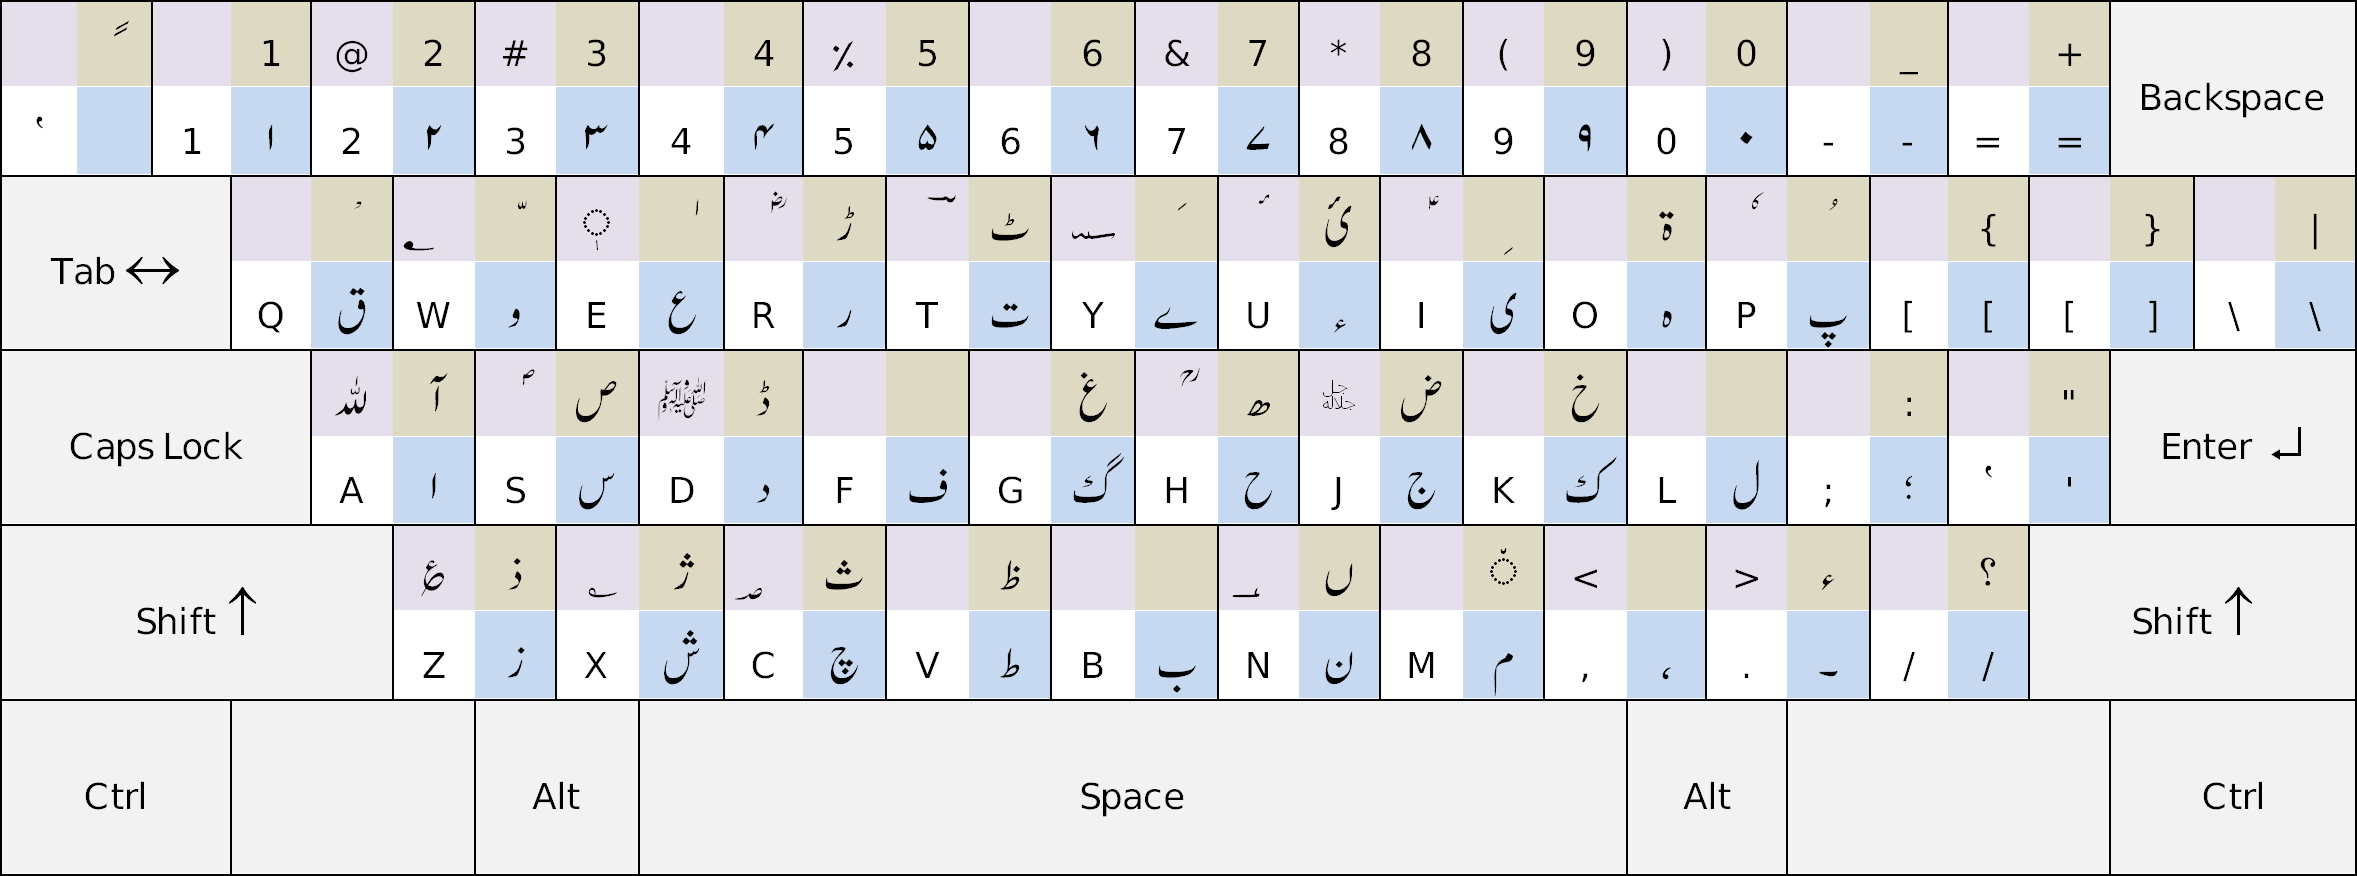 فائل:CRULP Phonetic Urdu Keyboard V1 1 All In One png - آزاد